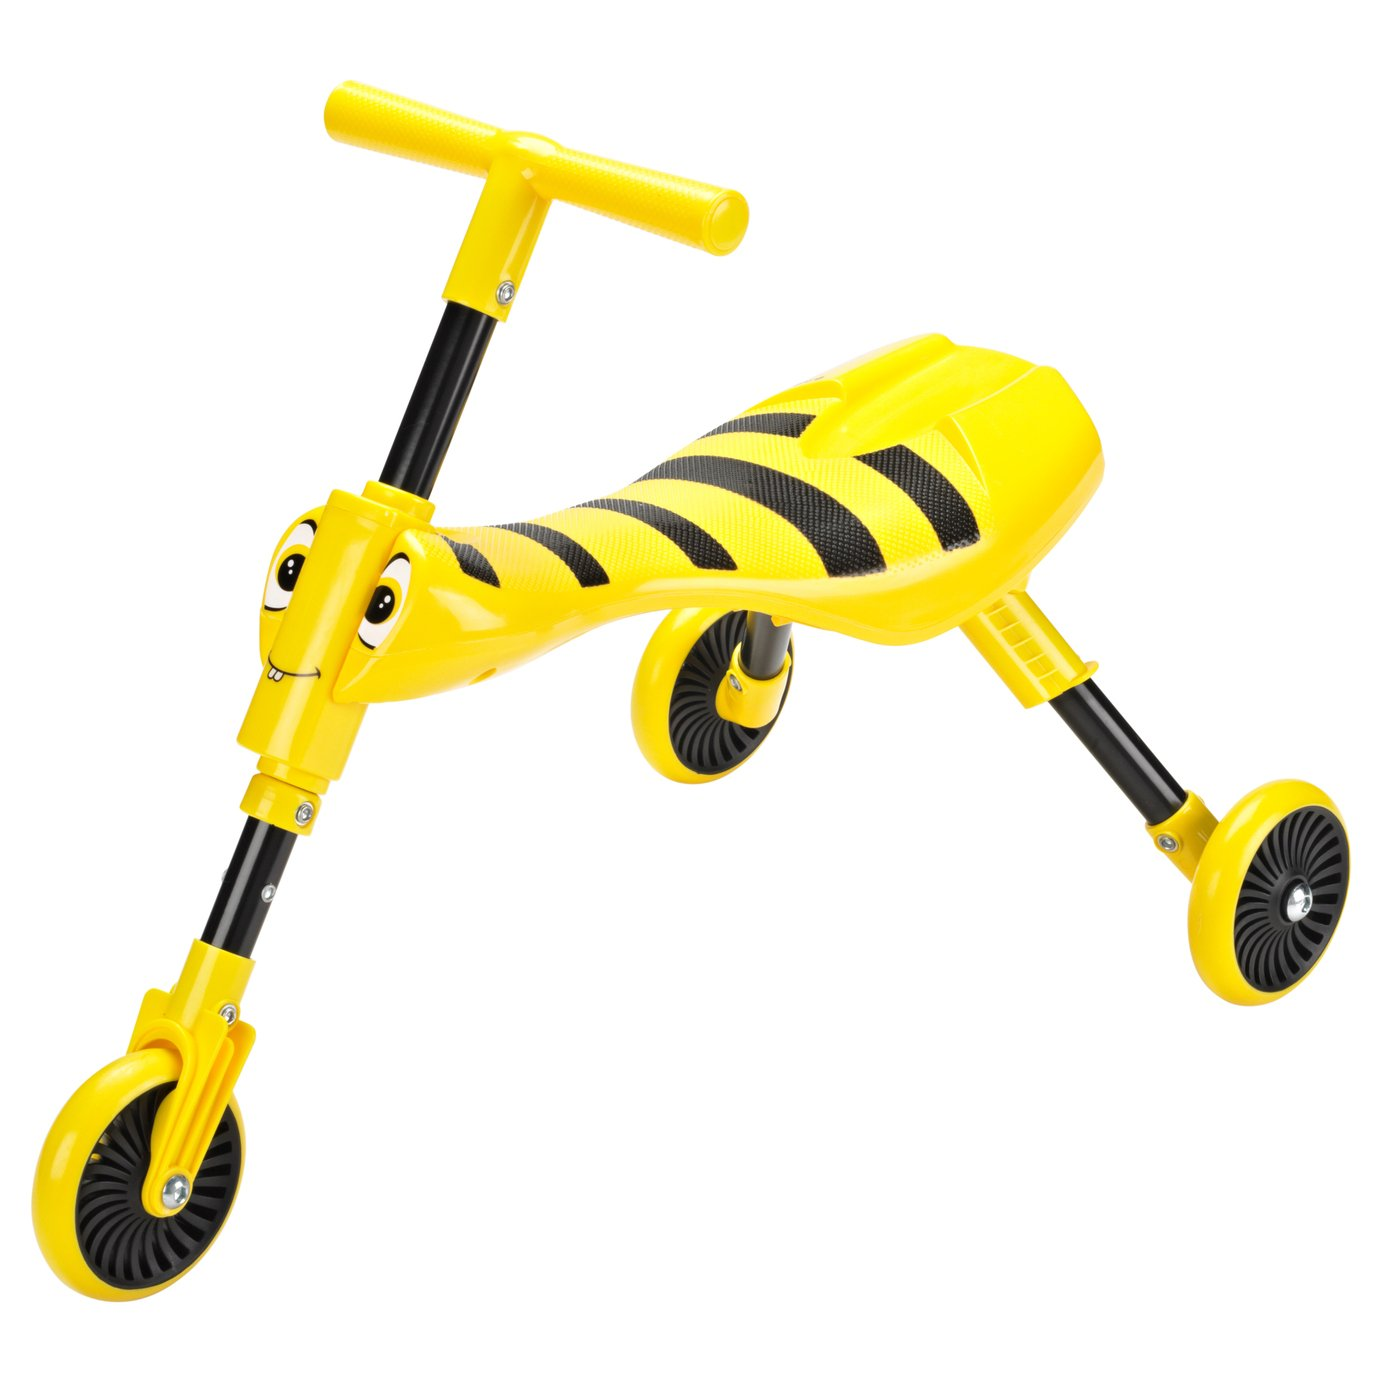 Scuttlebug Bumblebee Ride On - Yellow and Black